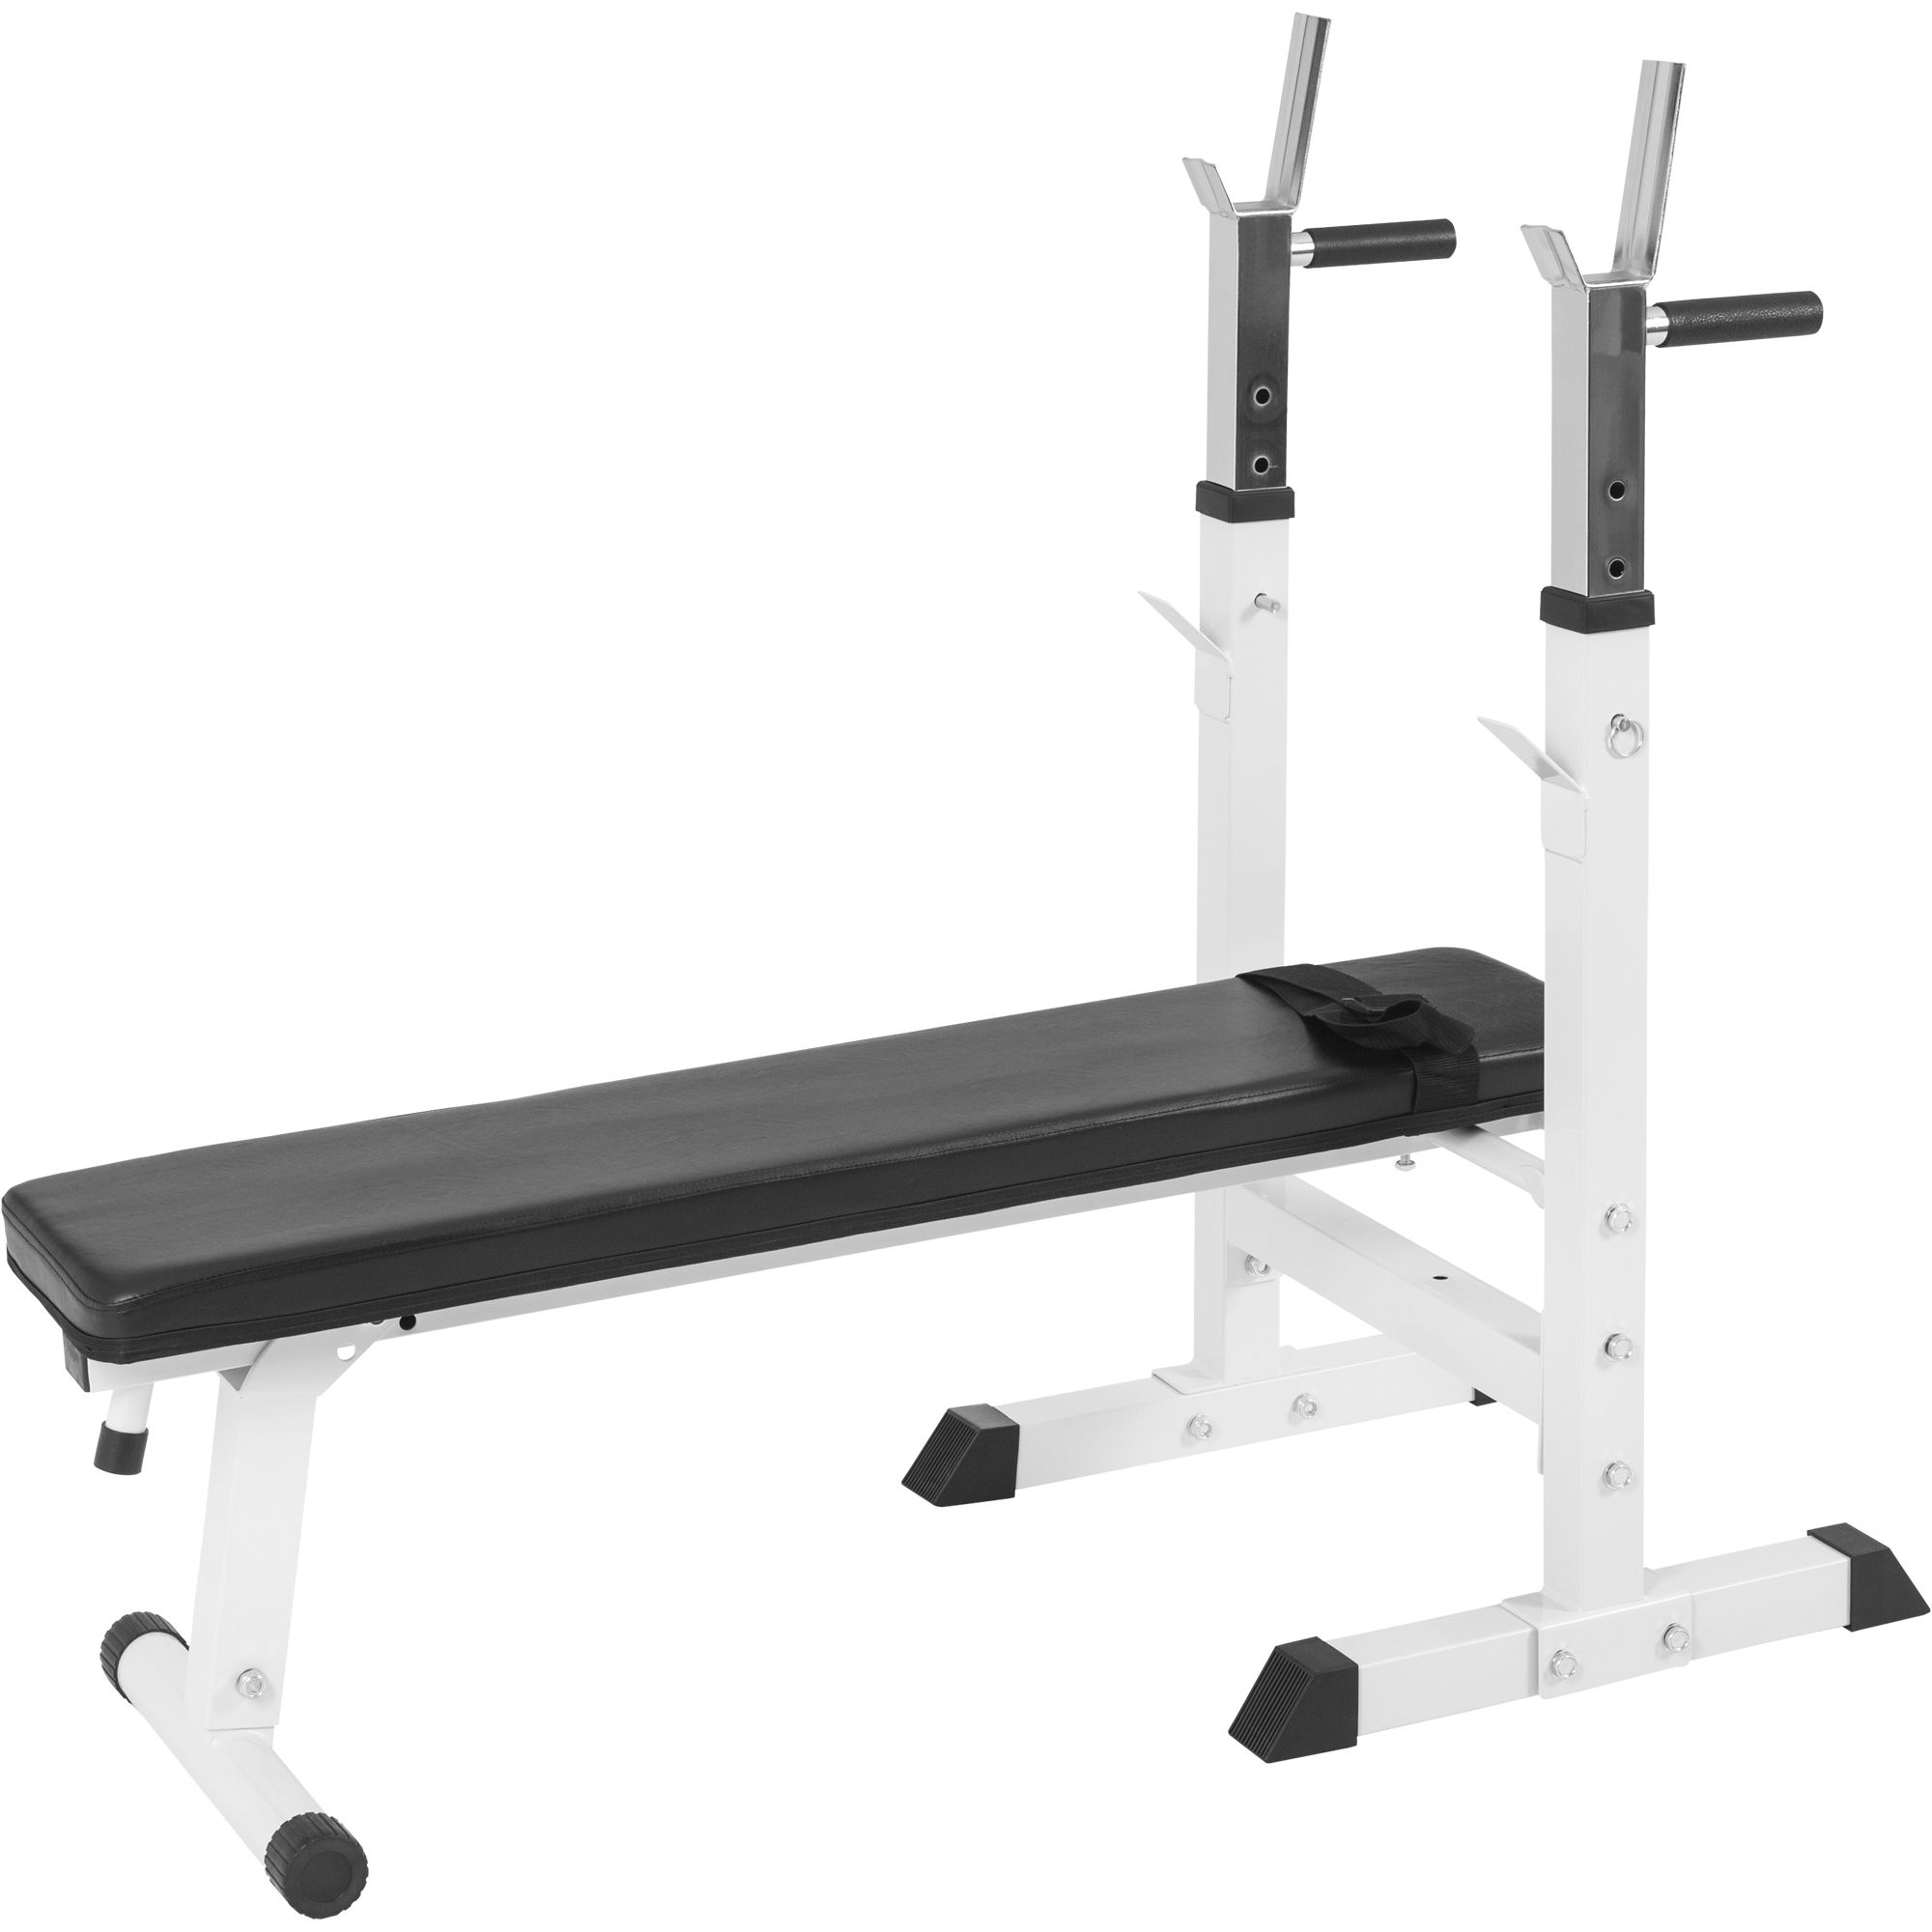 Gorilla Sports Banc De Musculation Avec Support De Barres Couleur Blanc